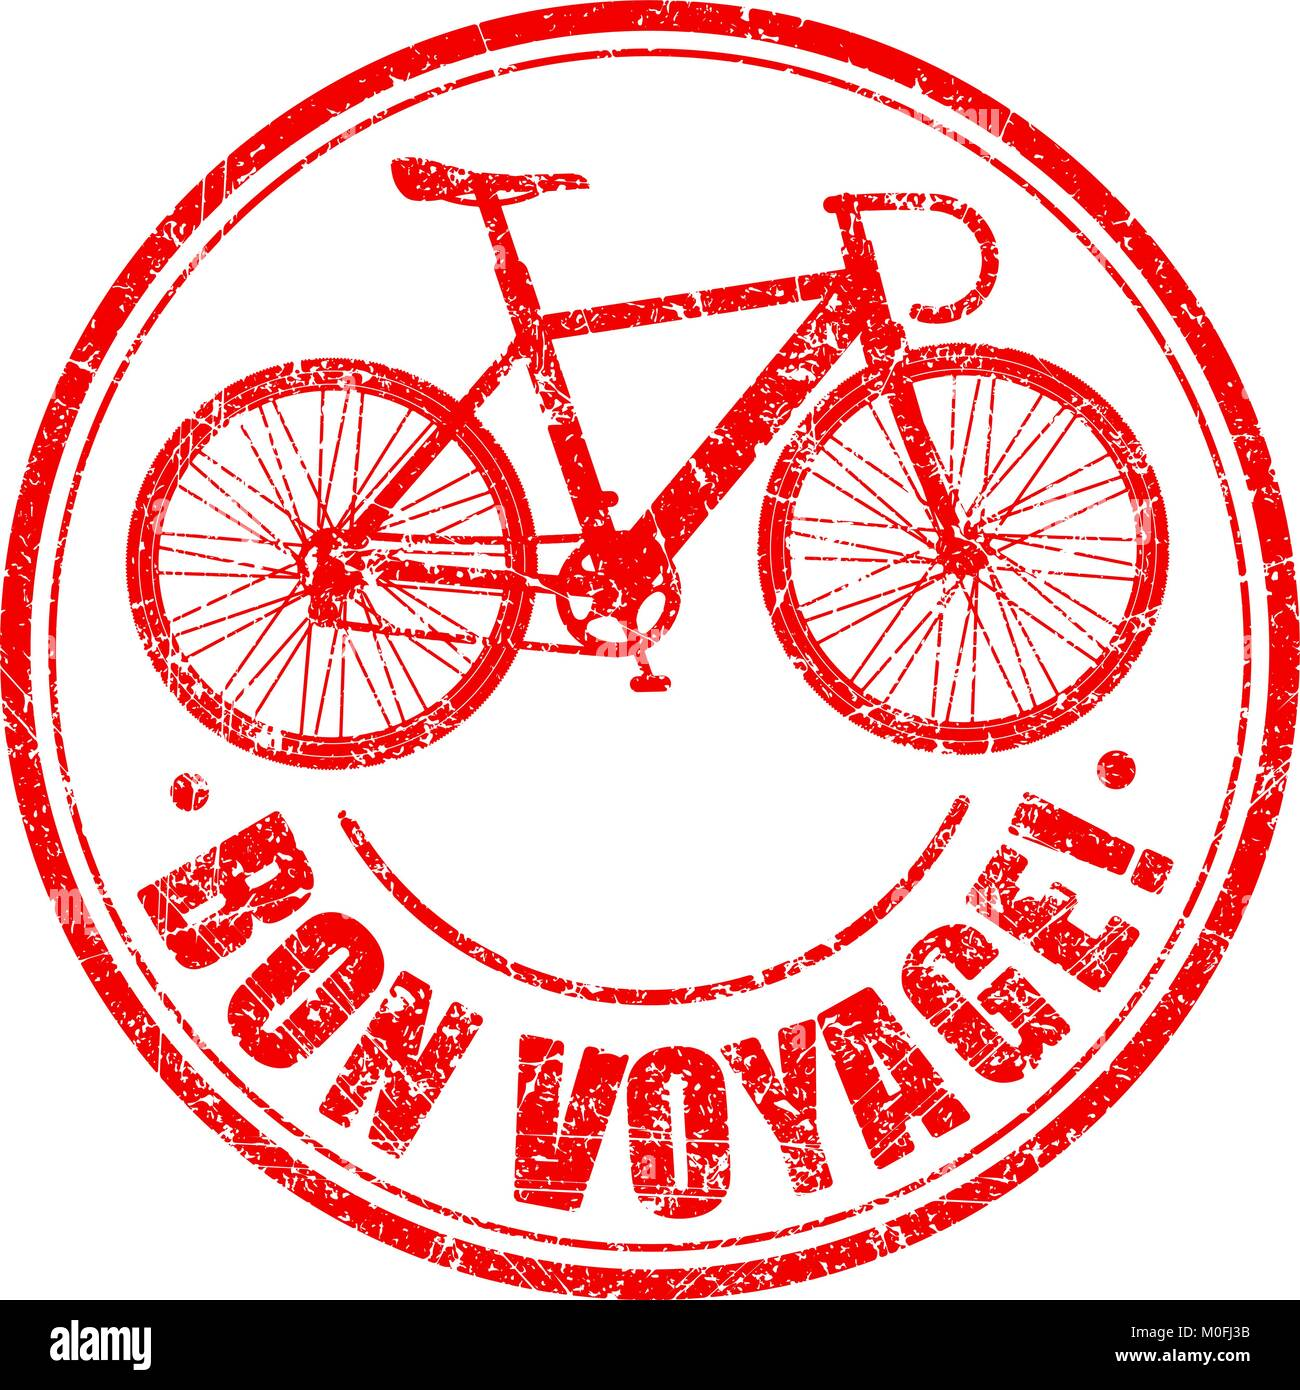 Bon voyage grunge rubber stamp with stylised bike - Stock Vector